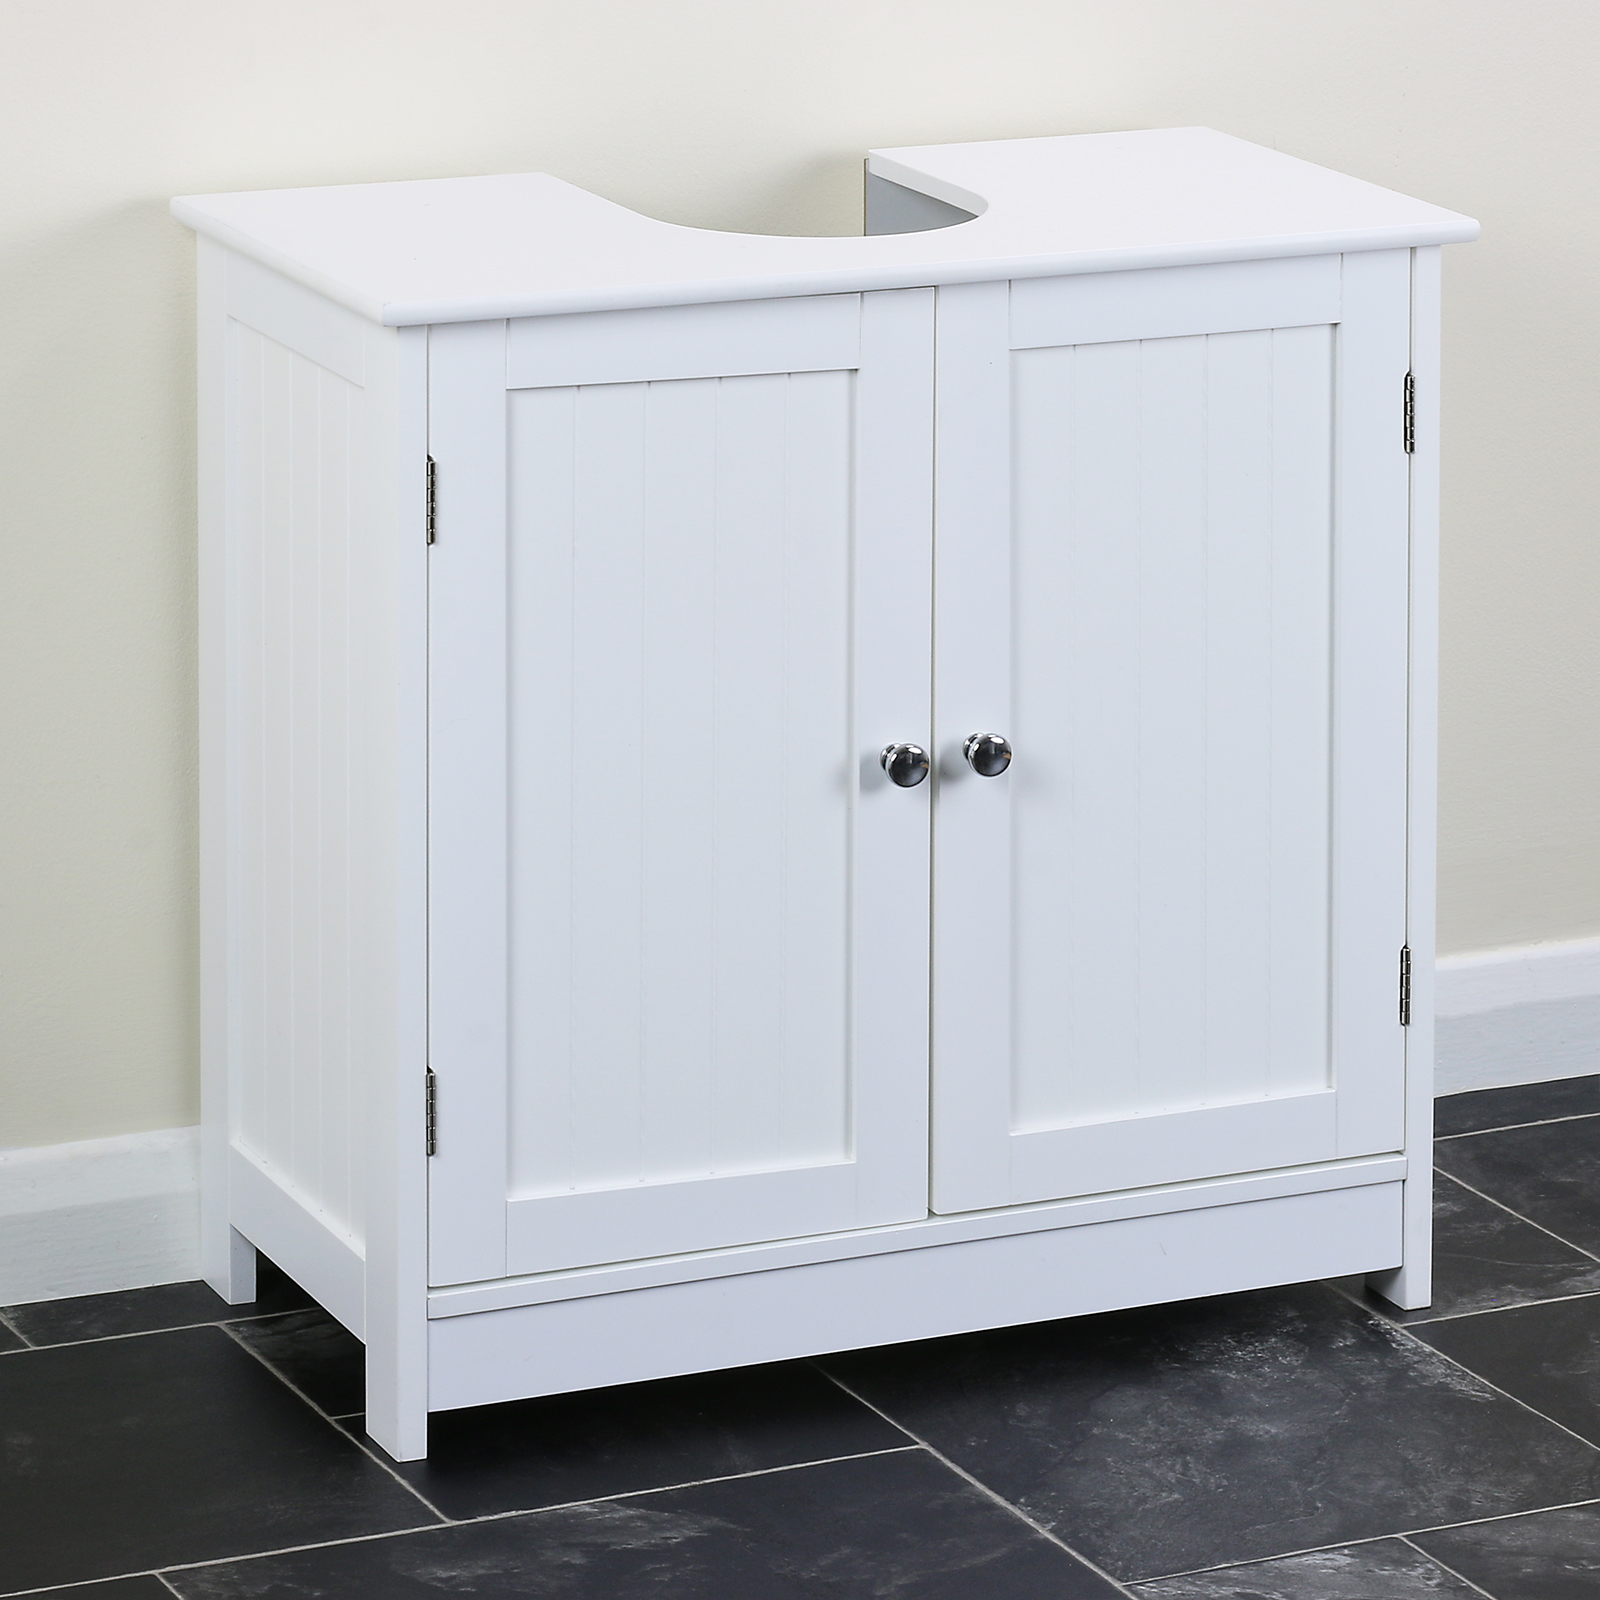 Terrific Details About Classic White Under Sink Storage Vanity Unit Bathroom Cupboard With Sink Cut Out Interior Design Ideas Ghosoteloinfo